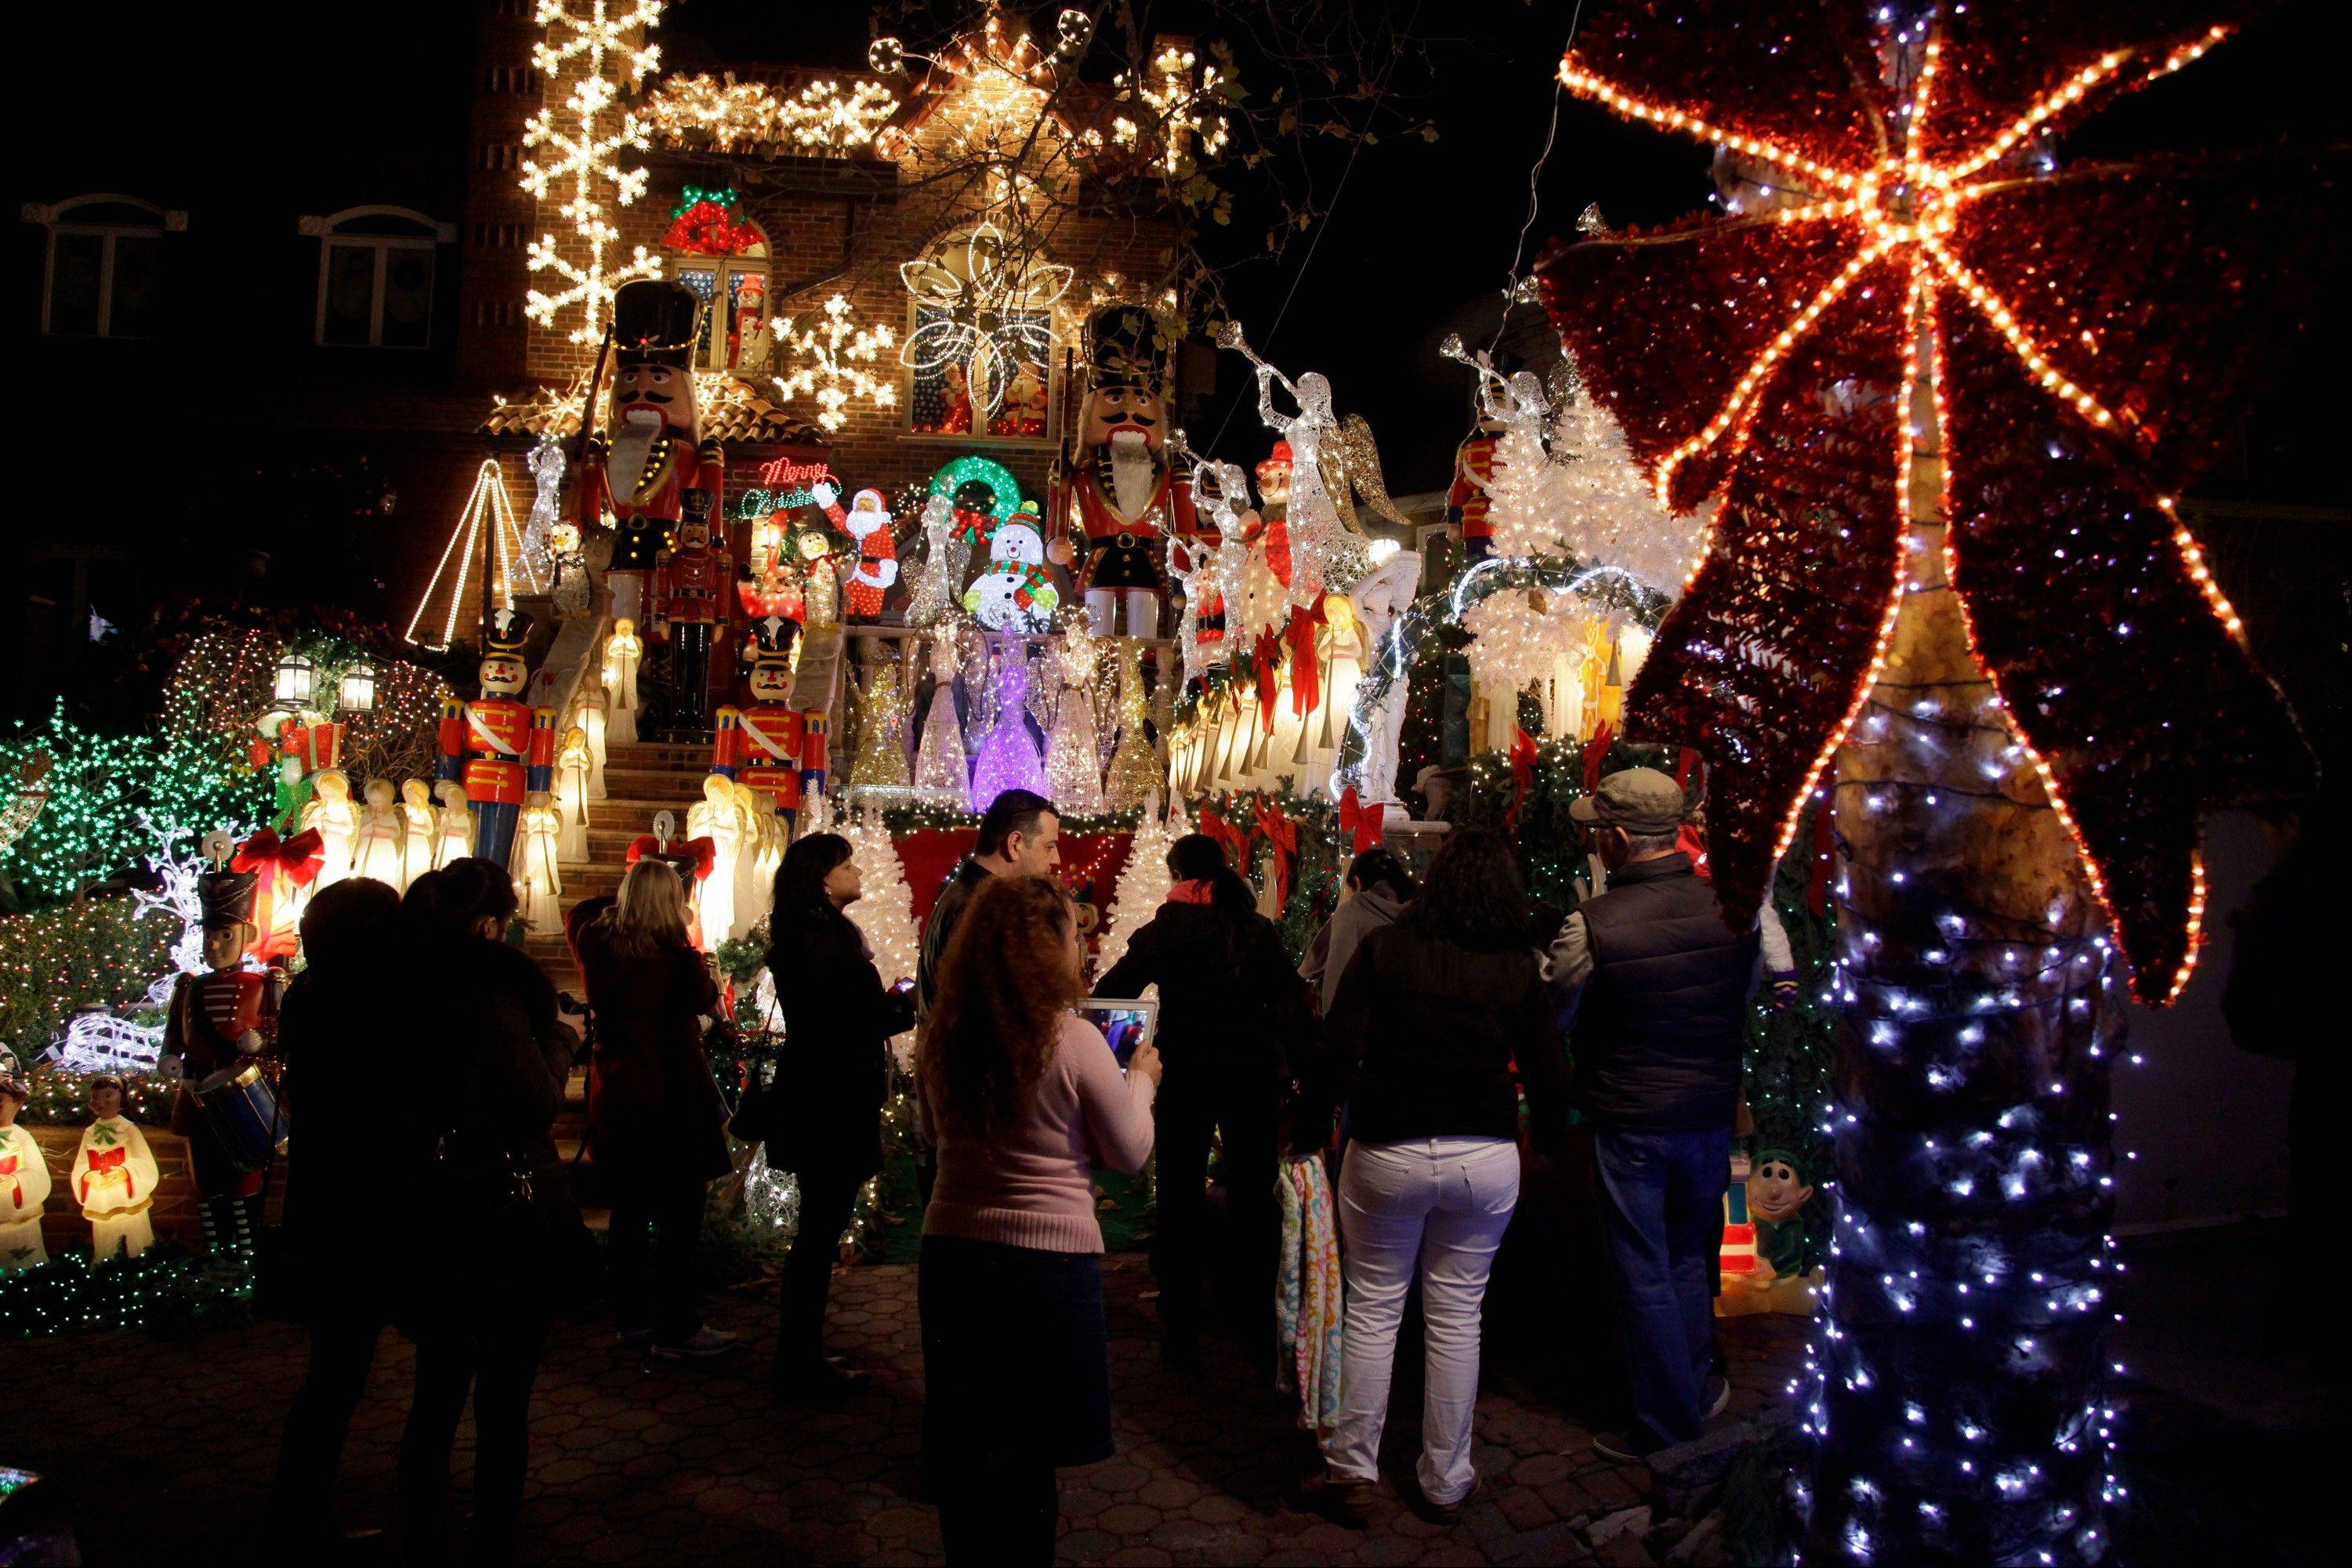 Spectators viewing an elaborately decorated home belonging to Lucy Spata as part of the Christmas Lights & Cannoli Tour of the Brooklyn neighborhoods of Dyker Heights and Bay Ridge, where locals take pride in over-the-top holiday light displays.